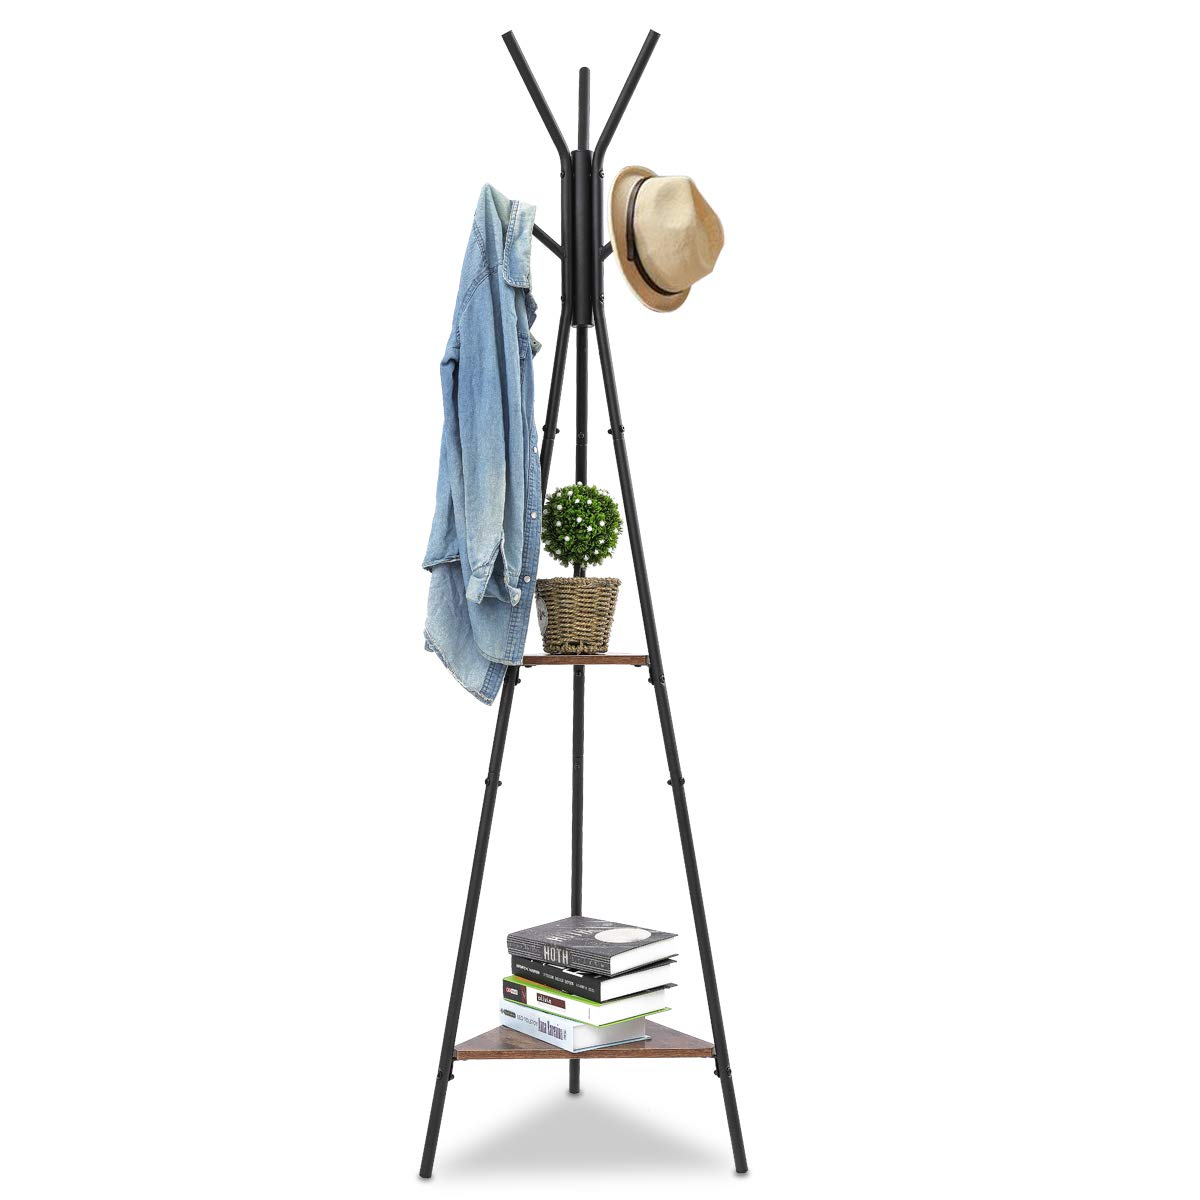 KingSo Coat Rack, Hall Tree Standing Coat Tree Hat Hanger Holder with 6 Hooks 2 Shelves for Bedroom Office Hallway Entryway